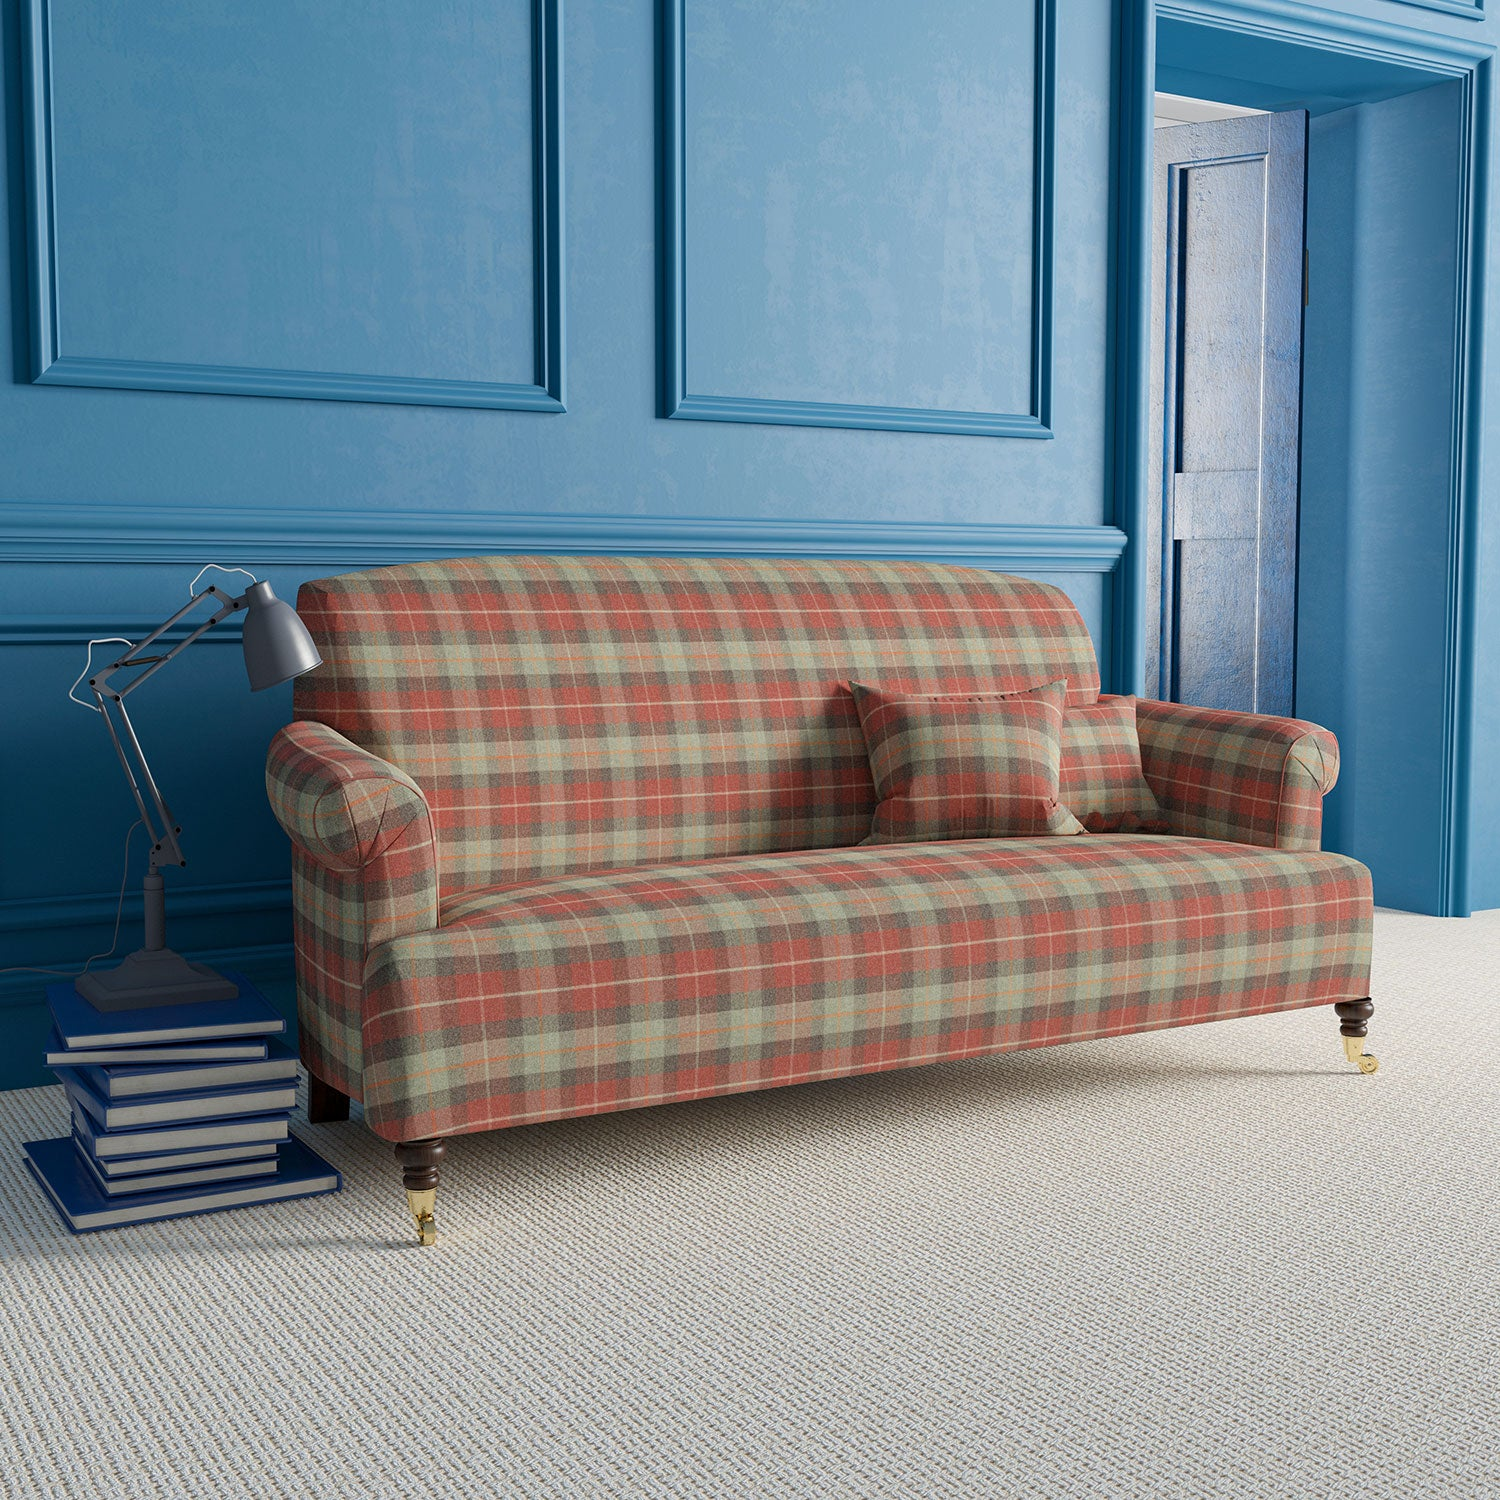 Sofa upholstered in a red and green wool check fabric.